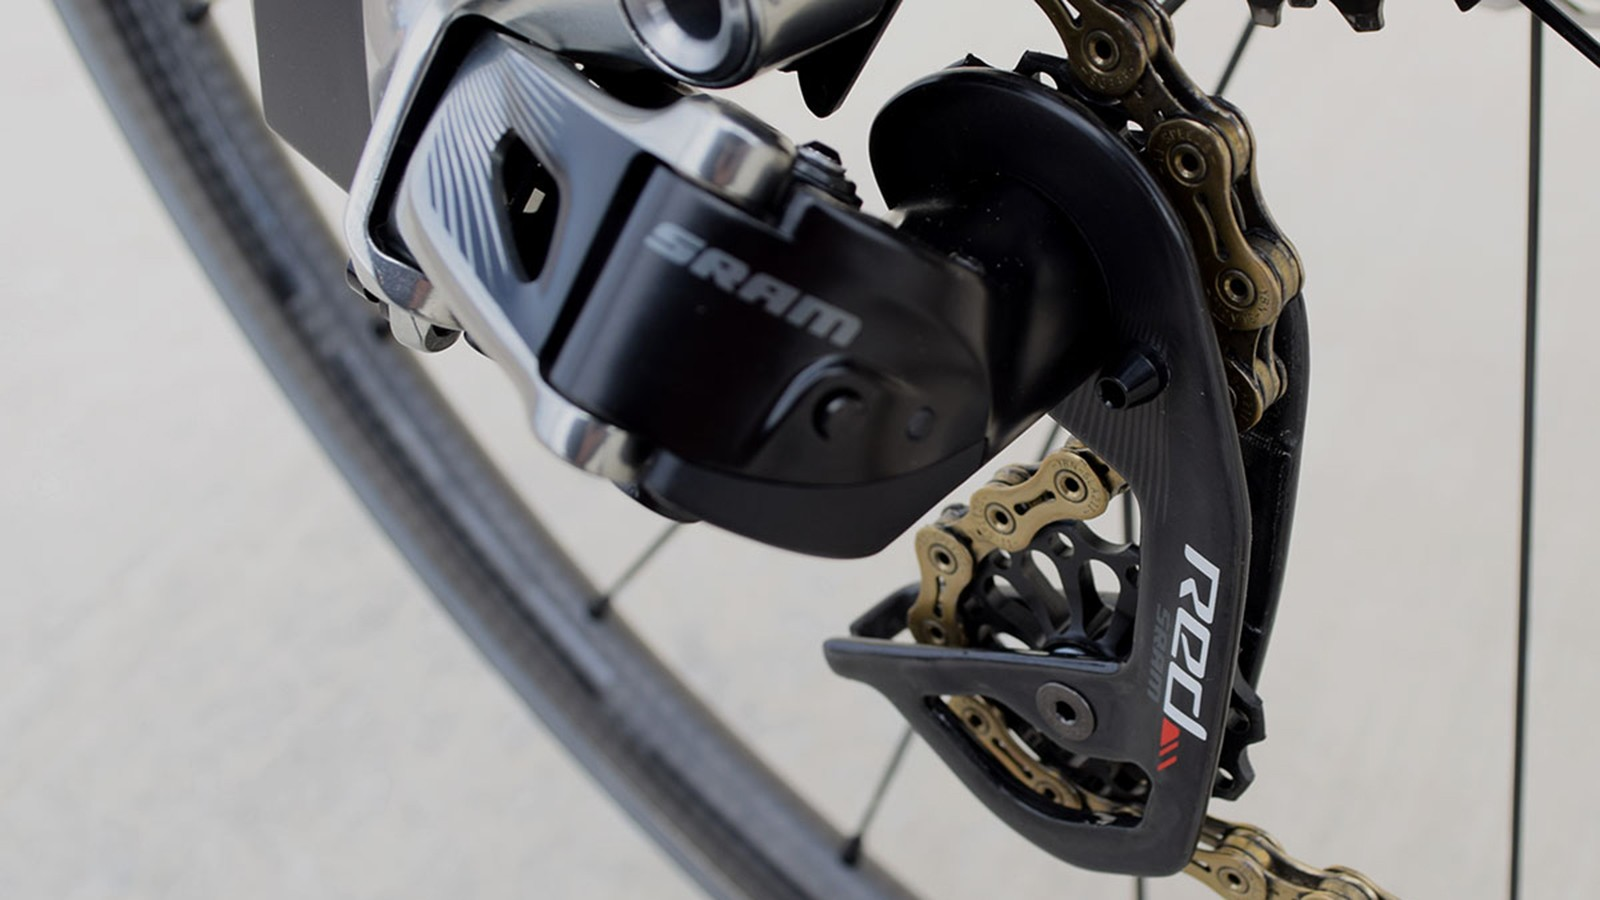 The rear derailleur was upgraded with Extralite pulleys